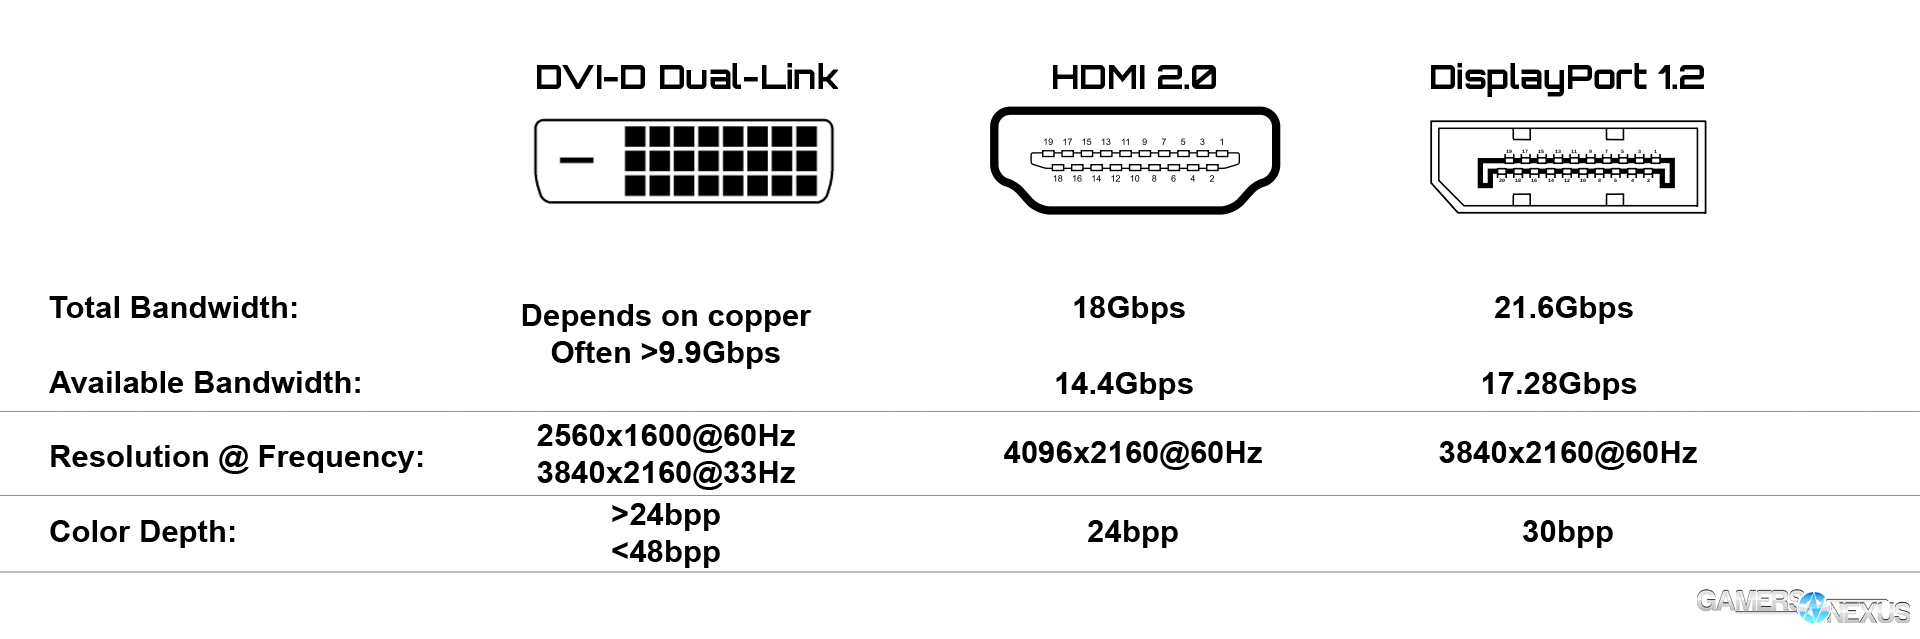 how to tell the difference between usb 2.0 and 3.0